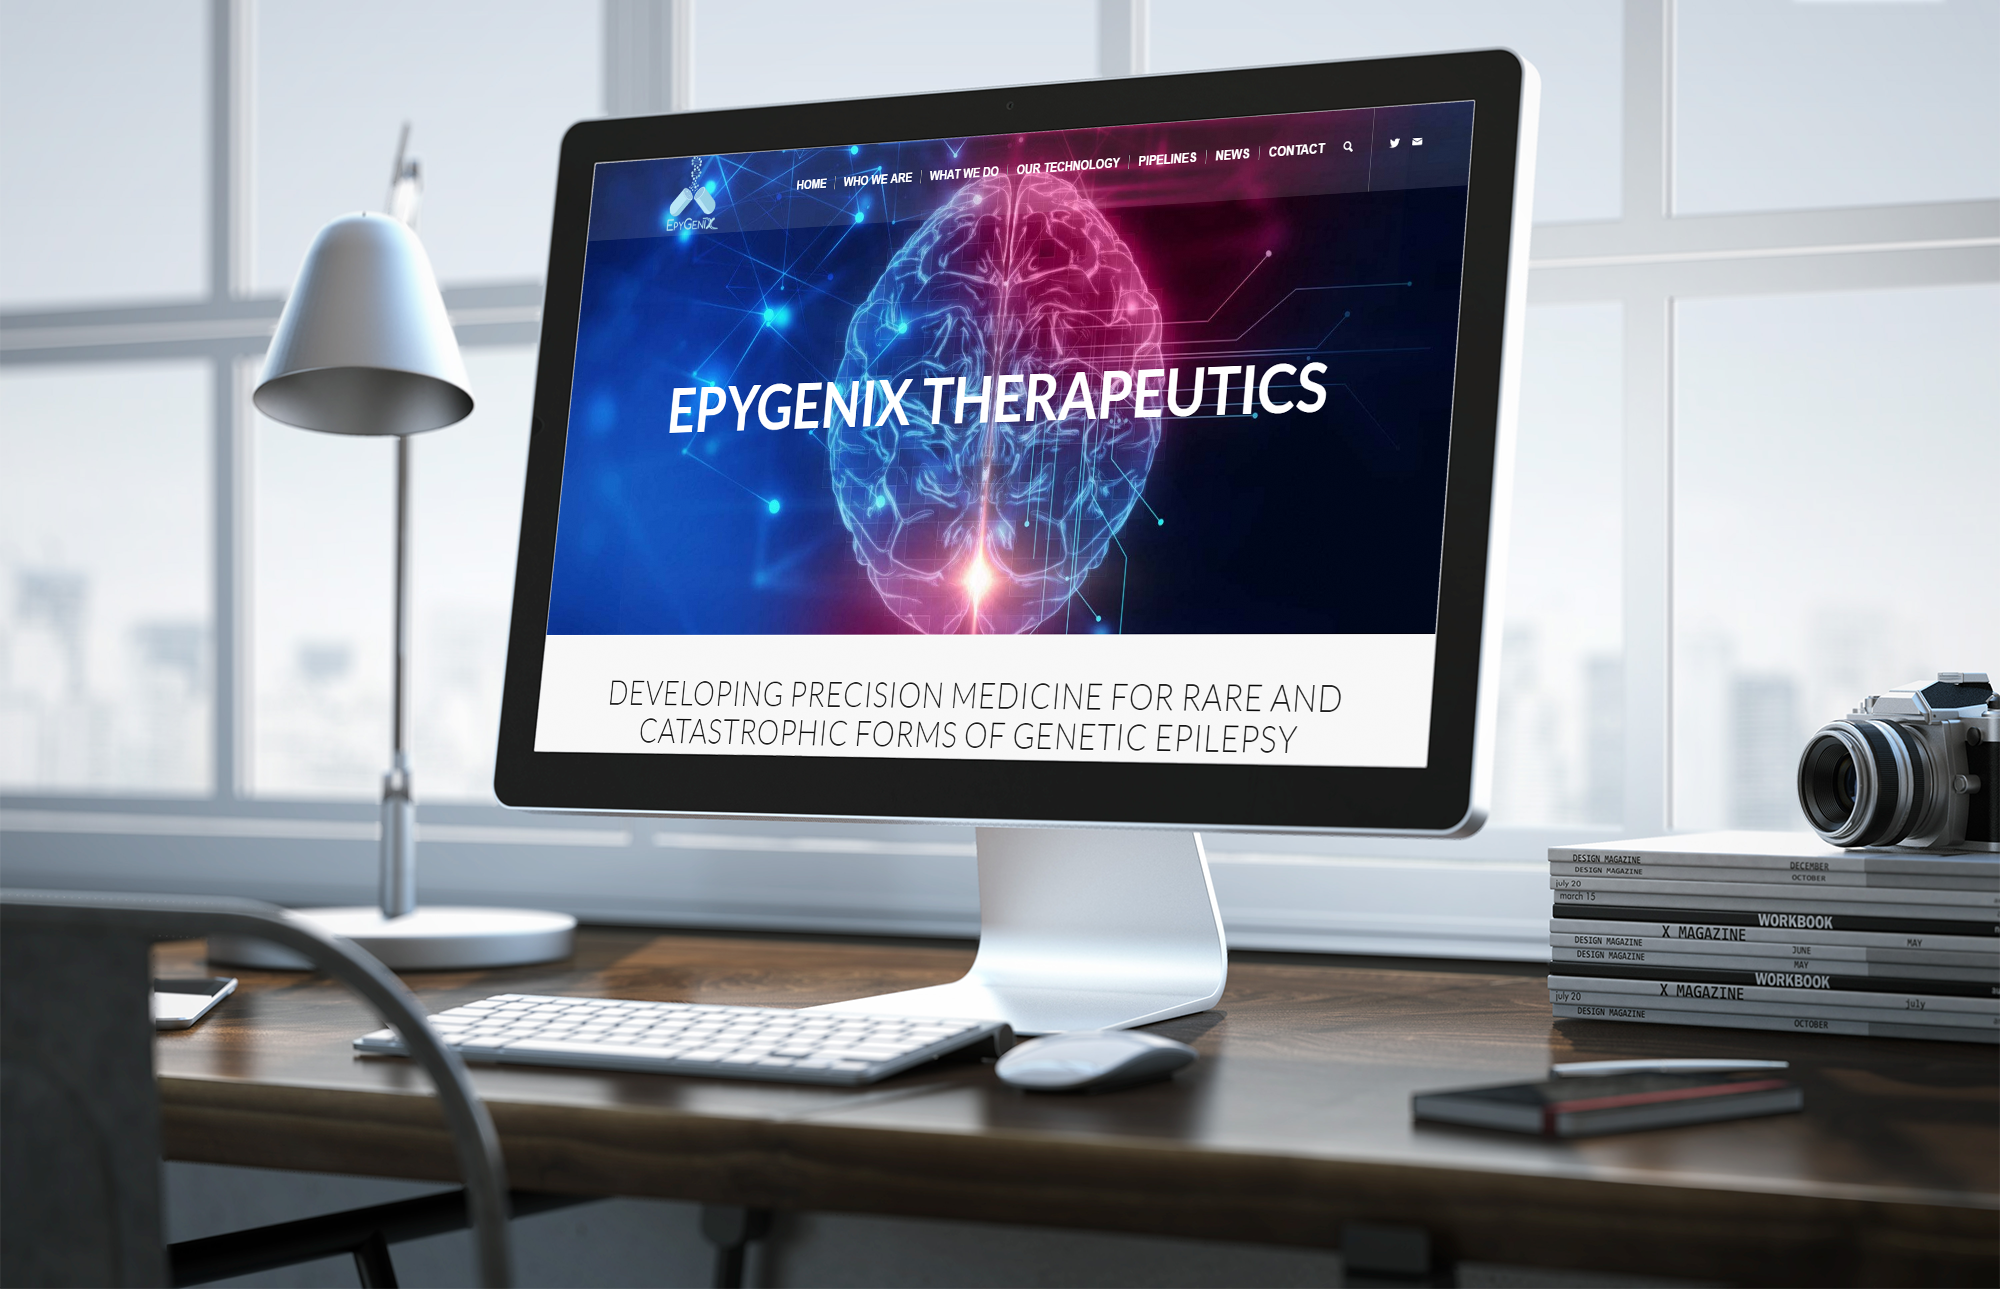 Epygenix Therapeutics Inc. Biotech Website Design, Health Sciences Website Design